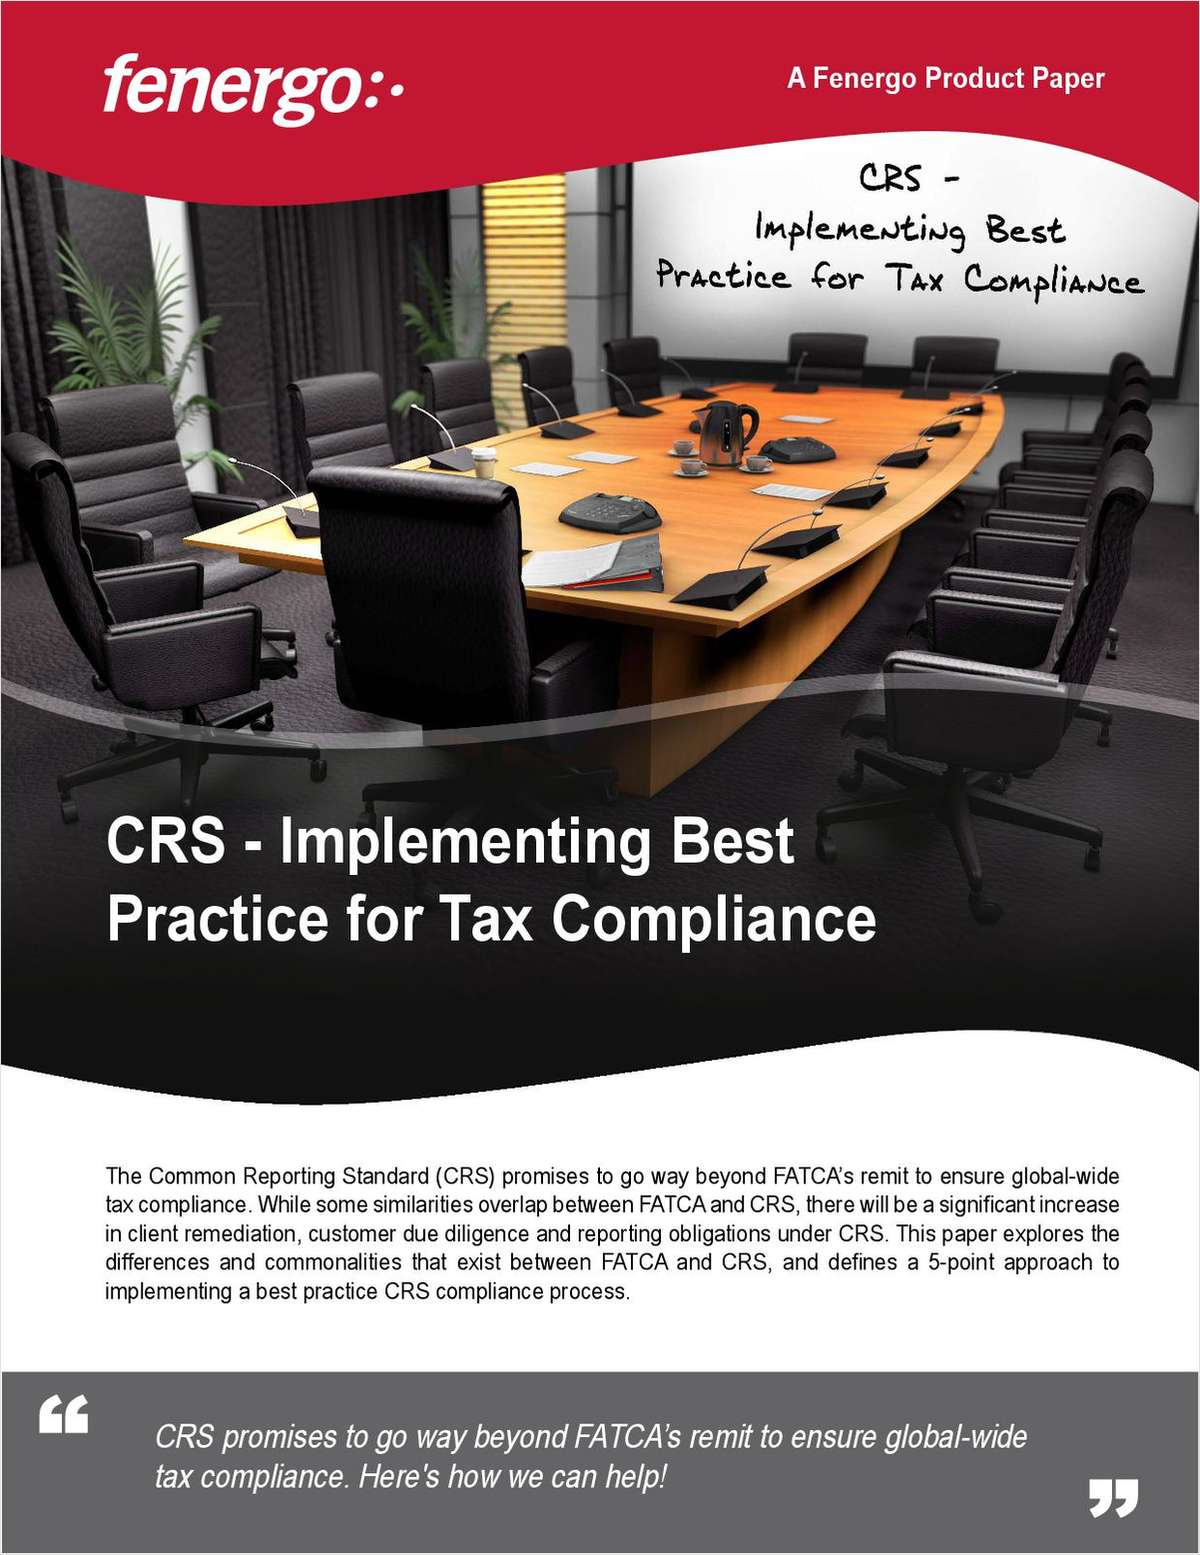 CRS - Implementing Best Practice Global Tax Compliance